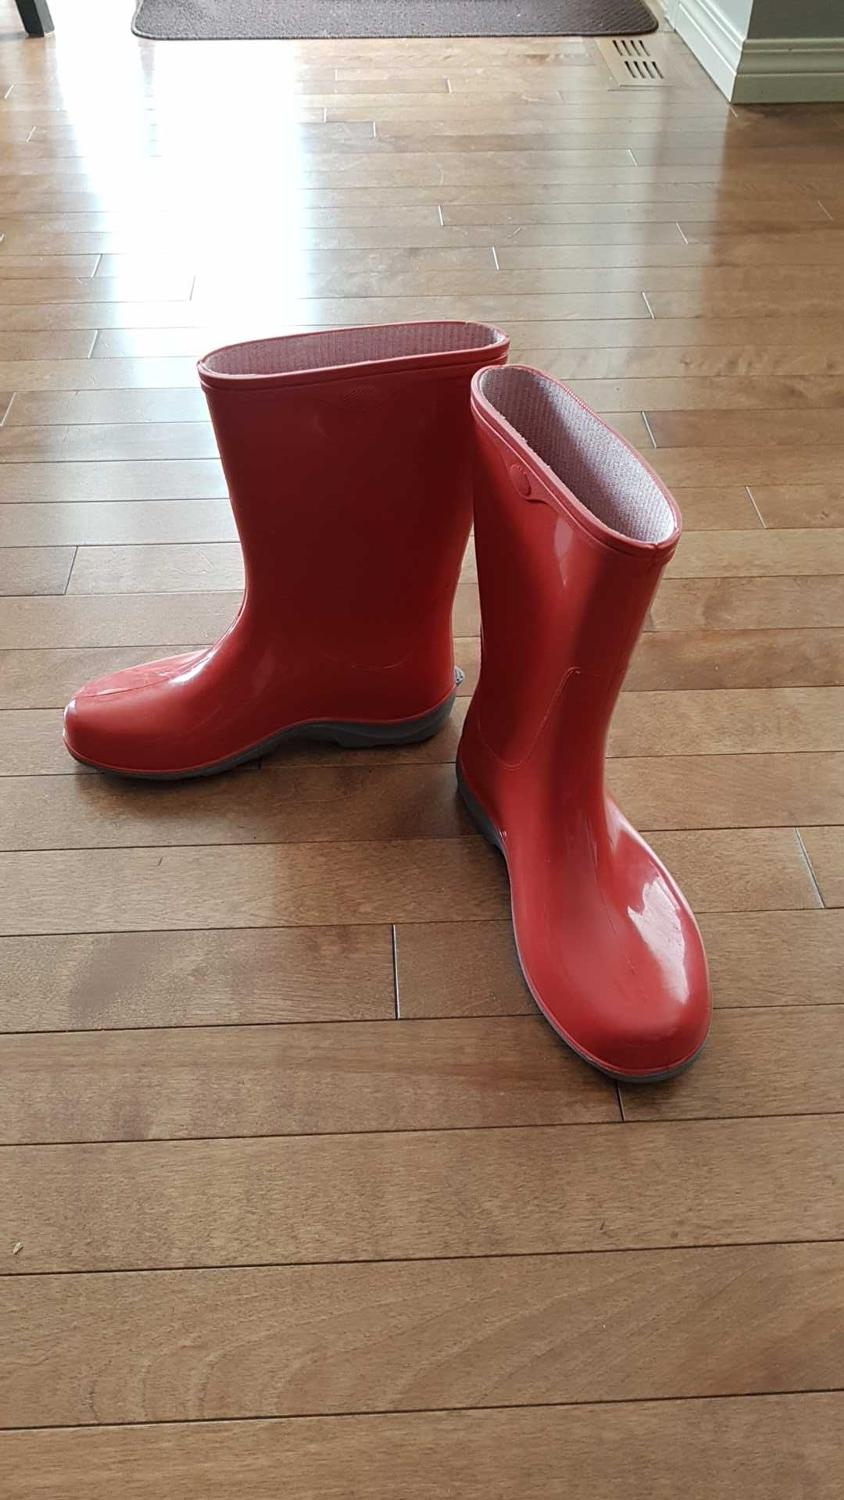 Find more New! Sloggers Rain Boots/ Garden Boots Sz 8 for sale at up ...